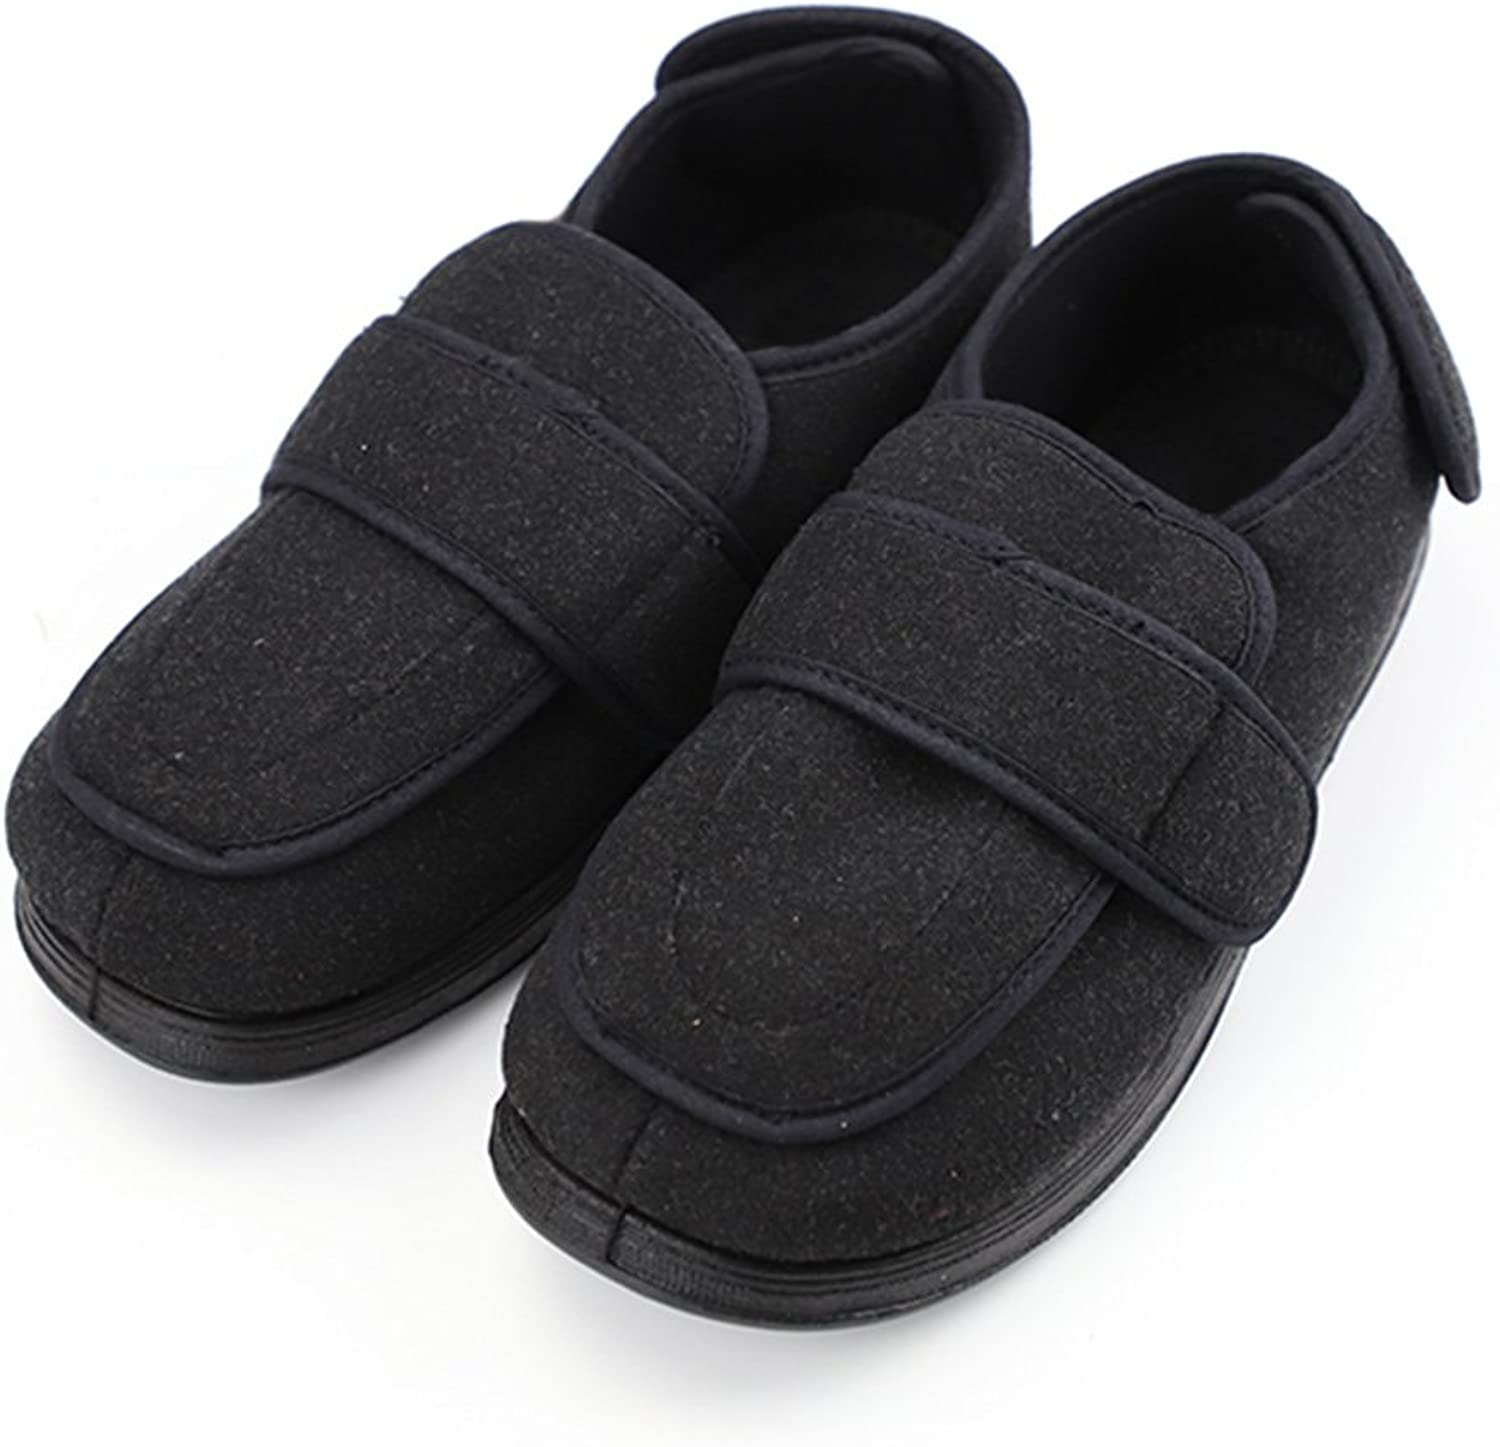 Orthoshoes Men's Extra Wide Slippers (7 UK) with Adjustable Closures Diabetic & Edema Arthritis Nonslip Footwear shoes